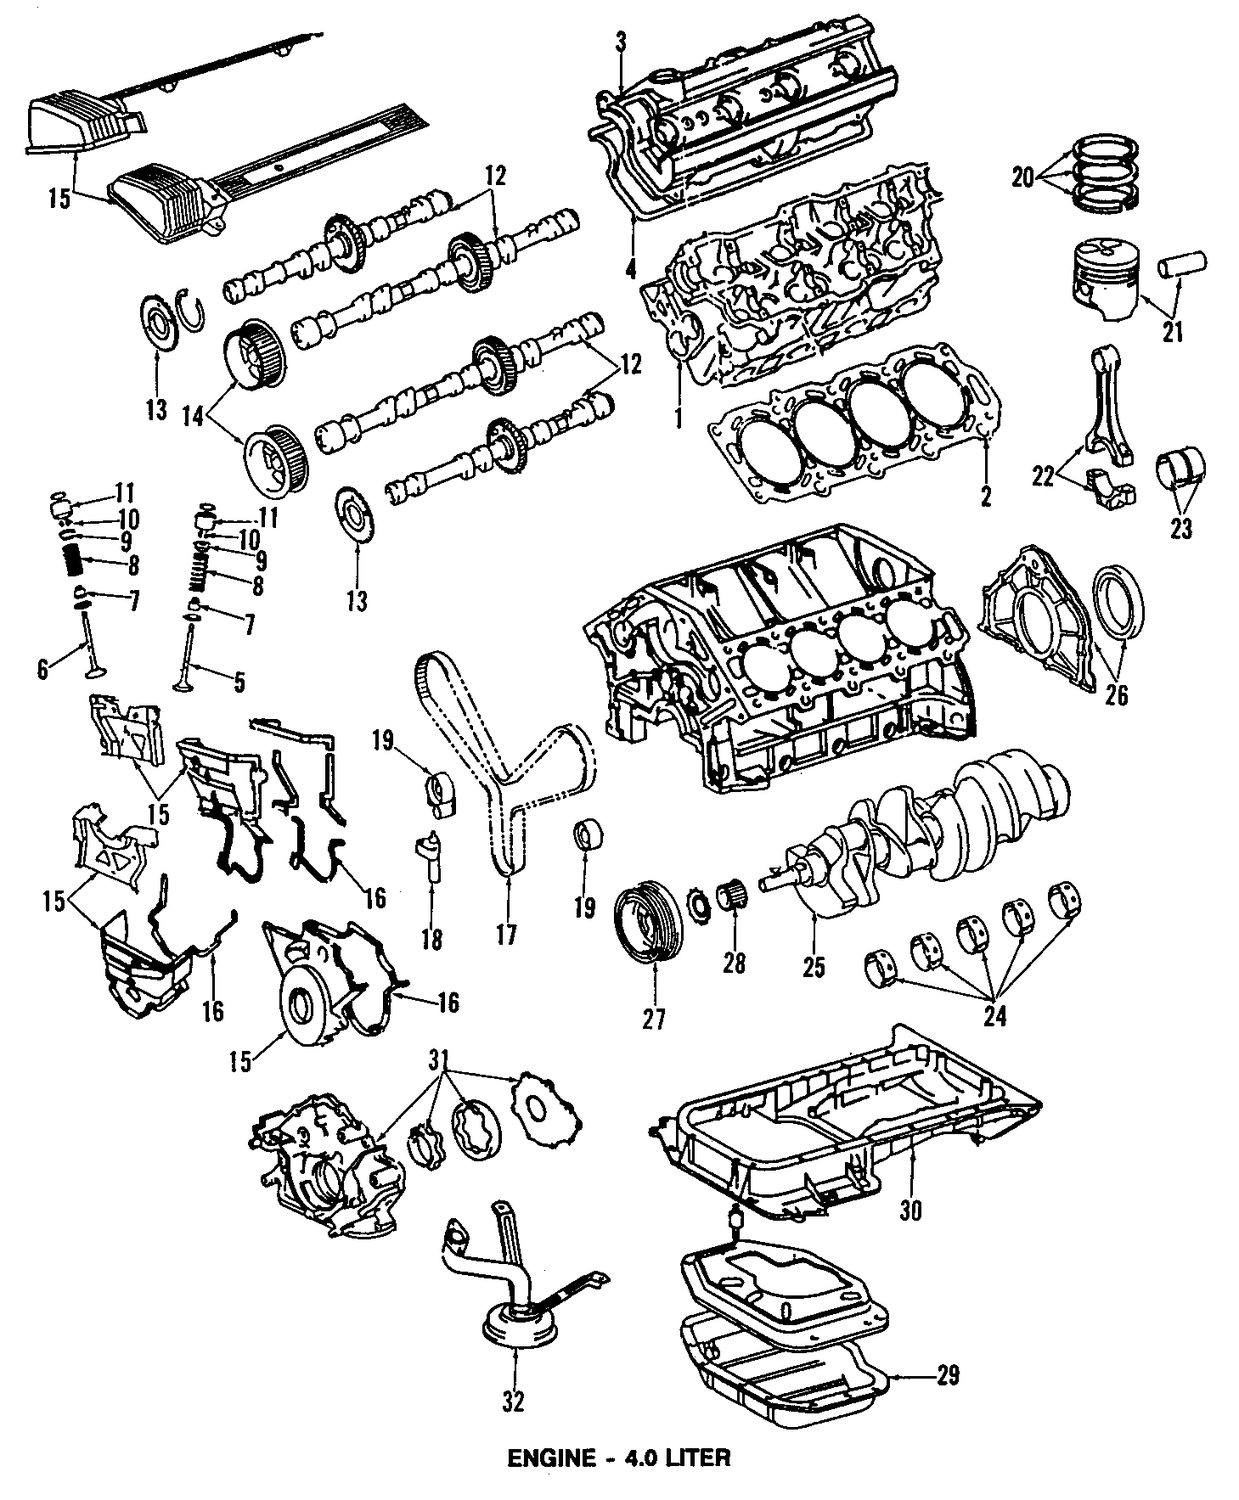 2003 Lexus Ls430 Engine Diagram. Lexus. Auto Parts Catalog